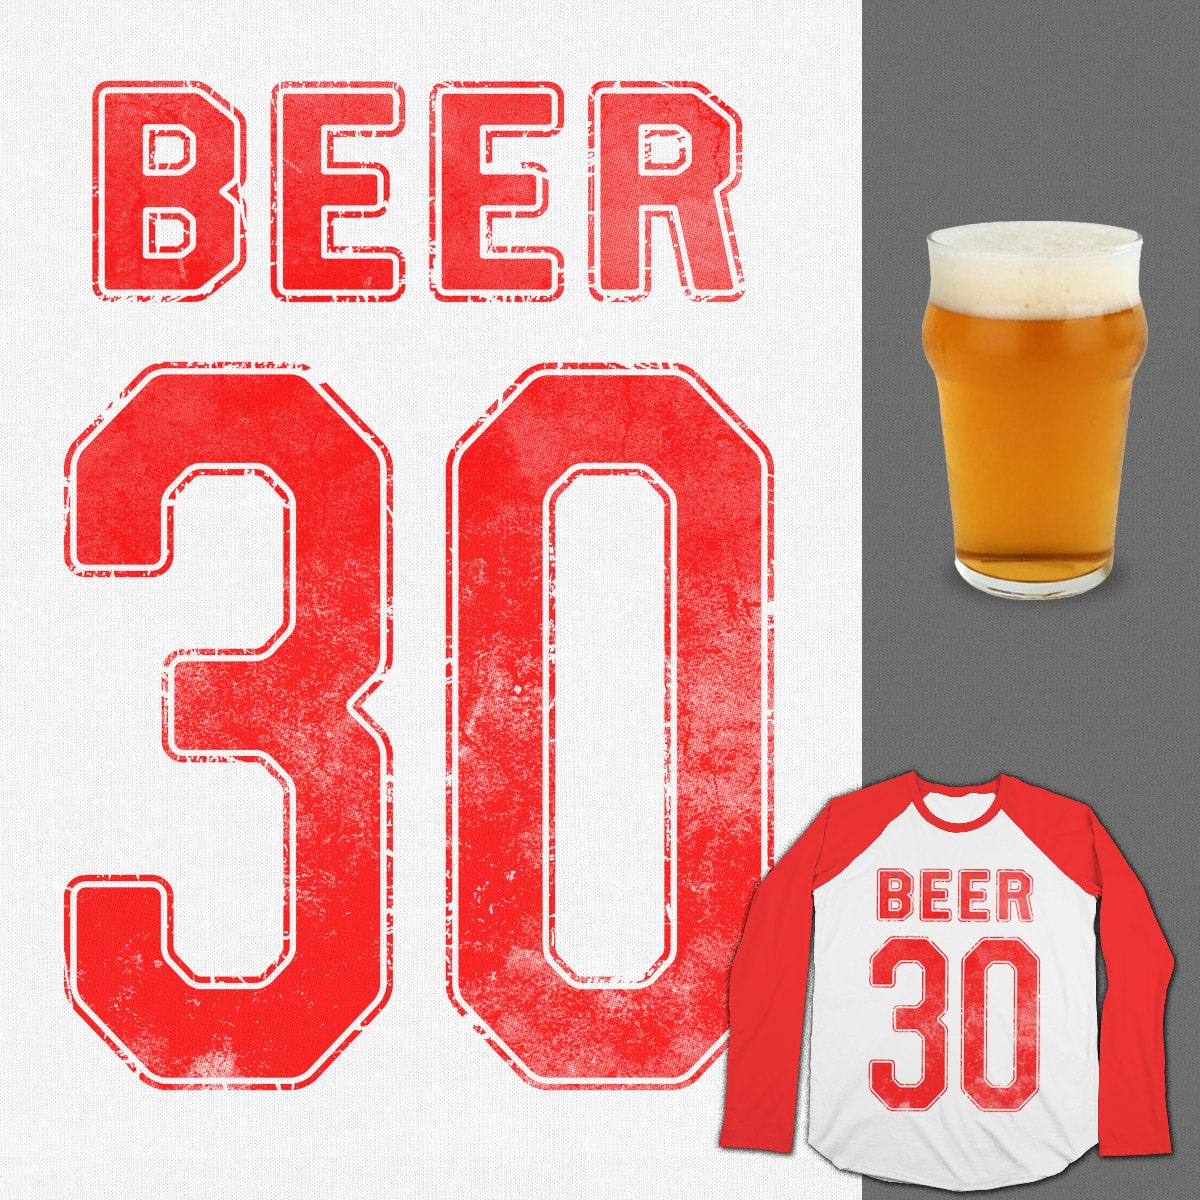 BEER 30 by tomburns on Threadless